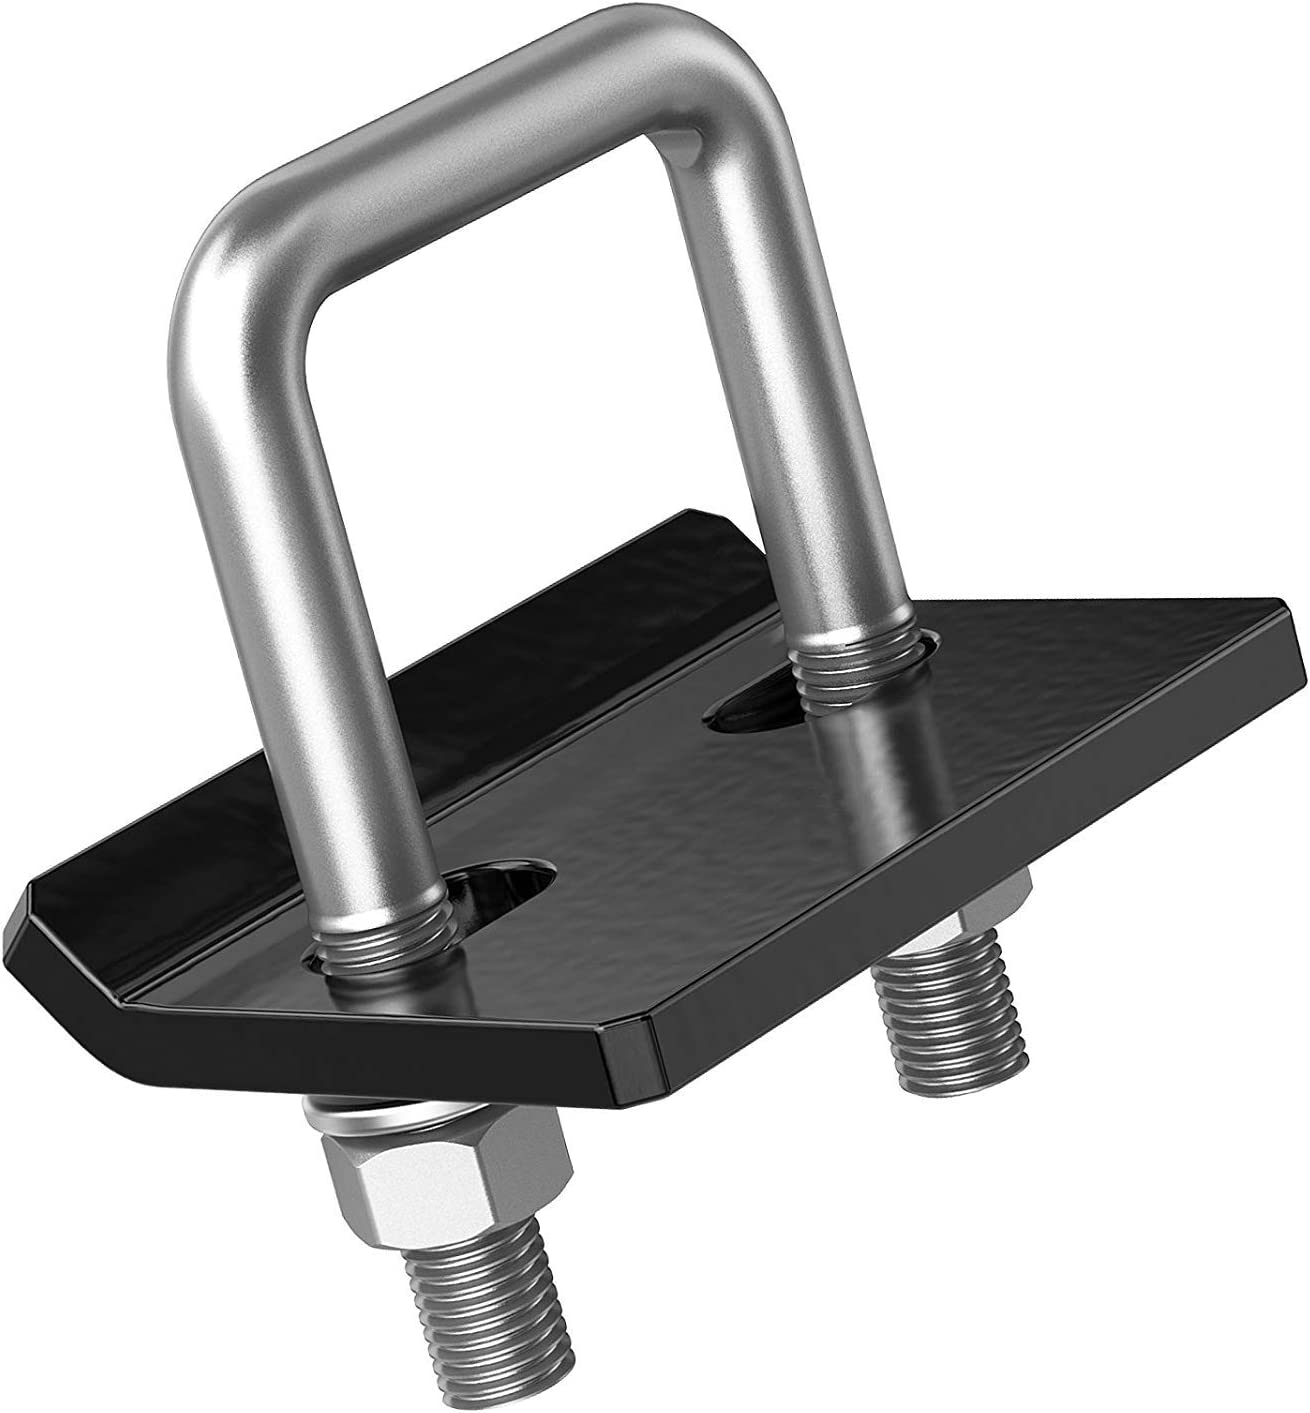 LIBBERRWAY 304 Stainless Steel Hitch Tightener